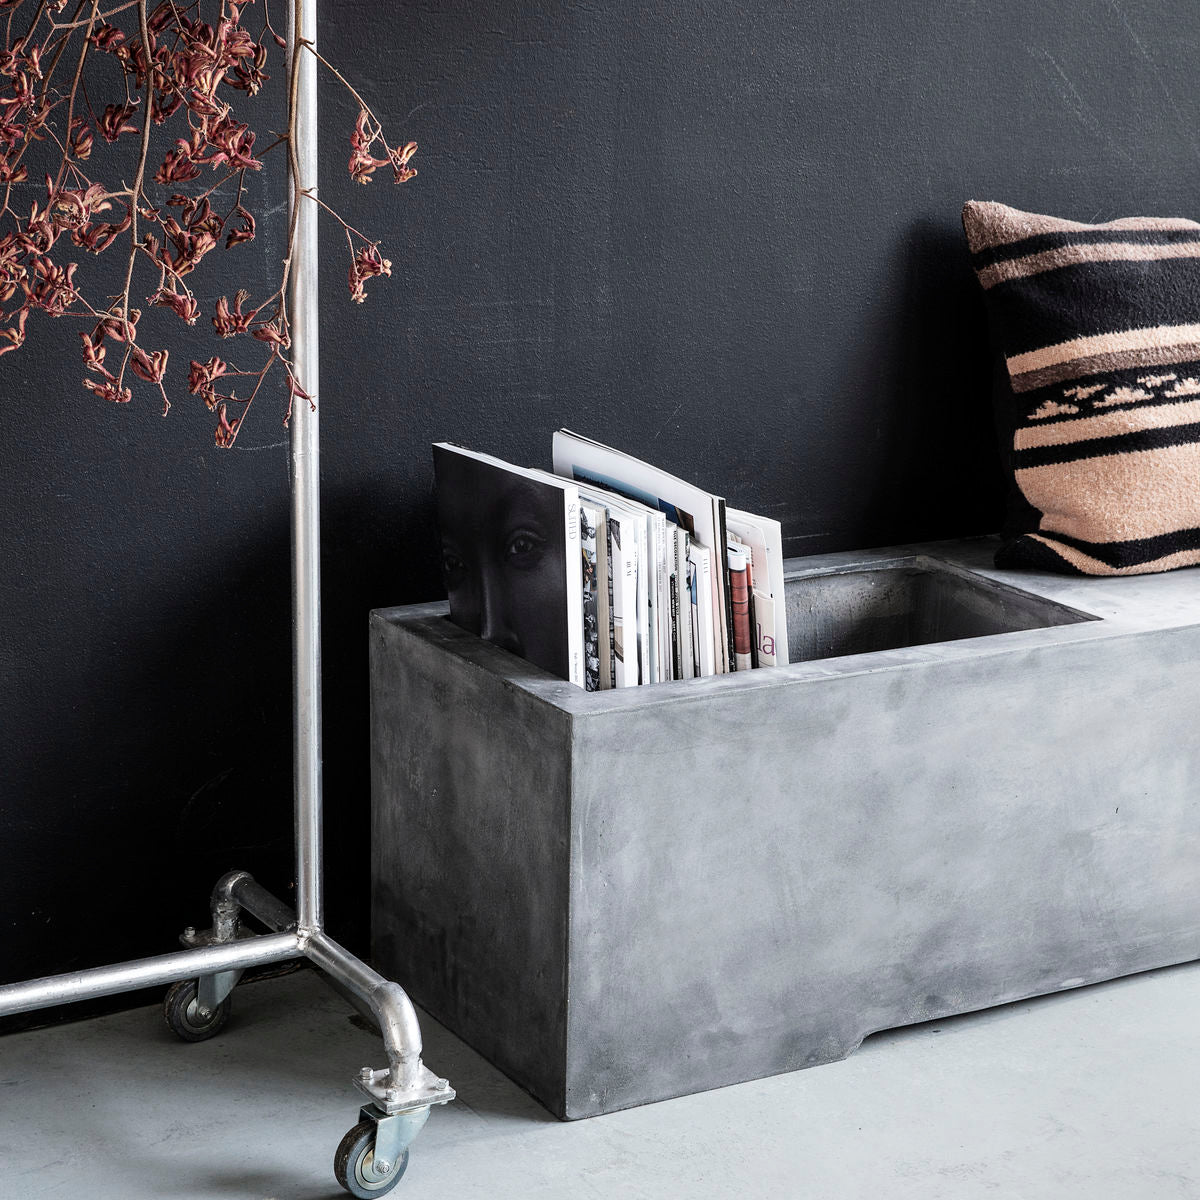 Concrete Bench with Storage